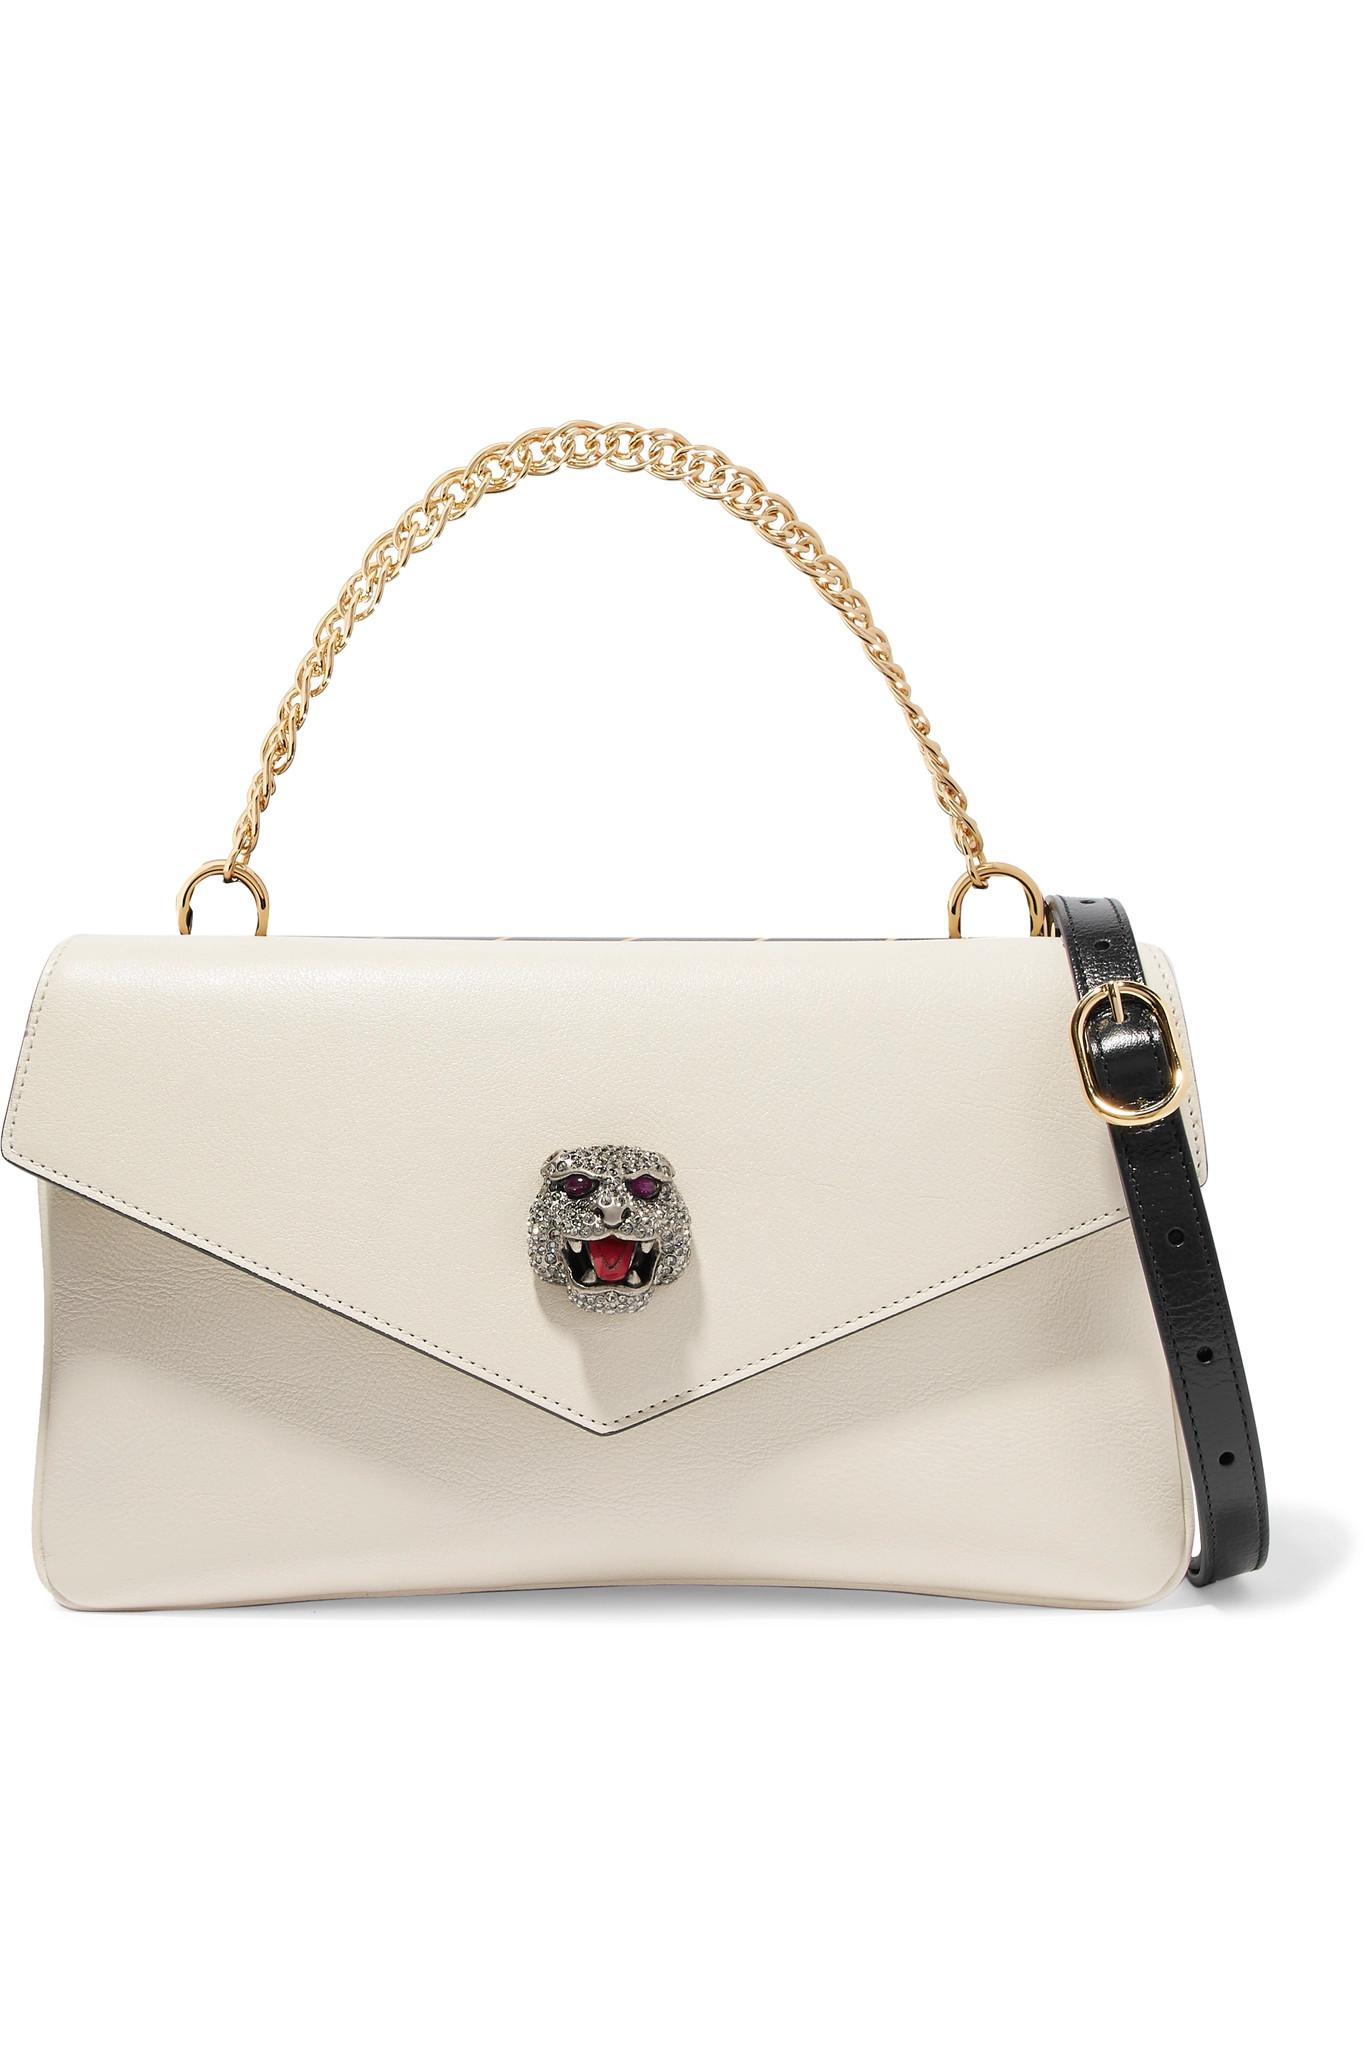 31199e554 Gucci Thiara Embellished Printed Leather Shoulder Bag in White - Lyst